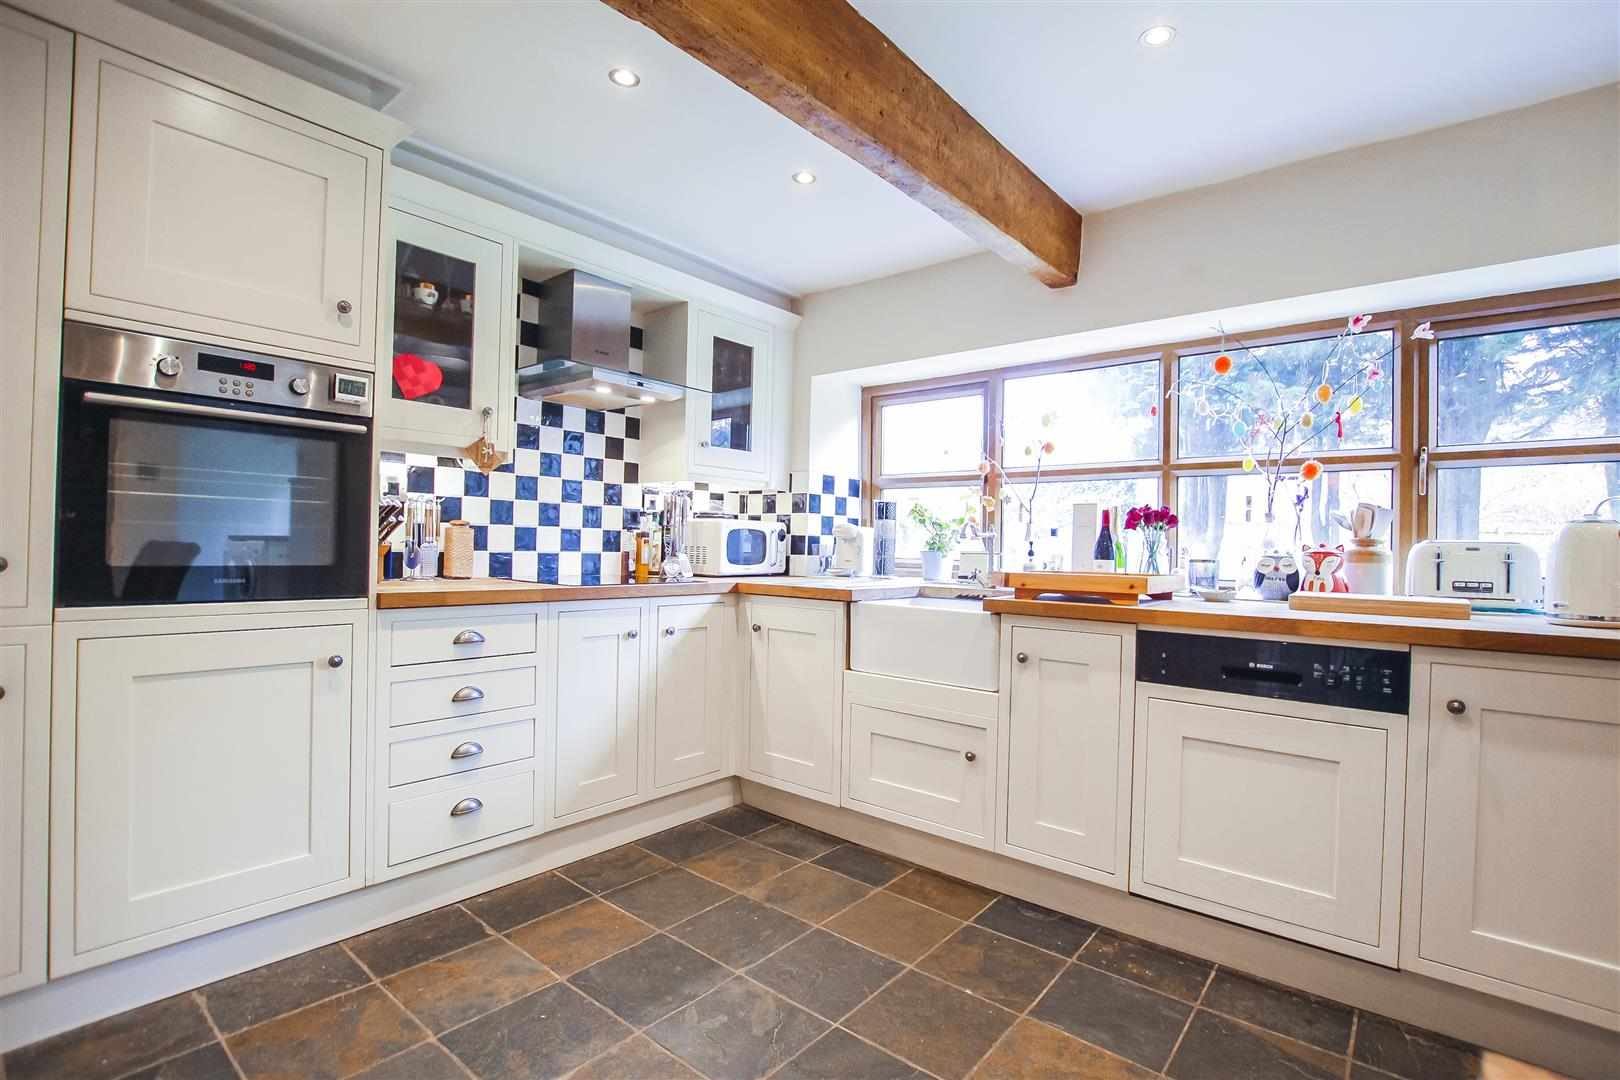 4 Bedroom Farmhouse For Sale - Image 32